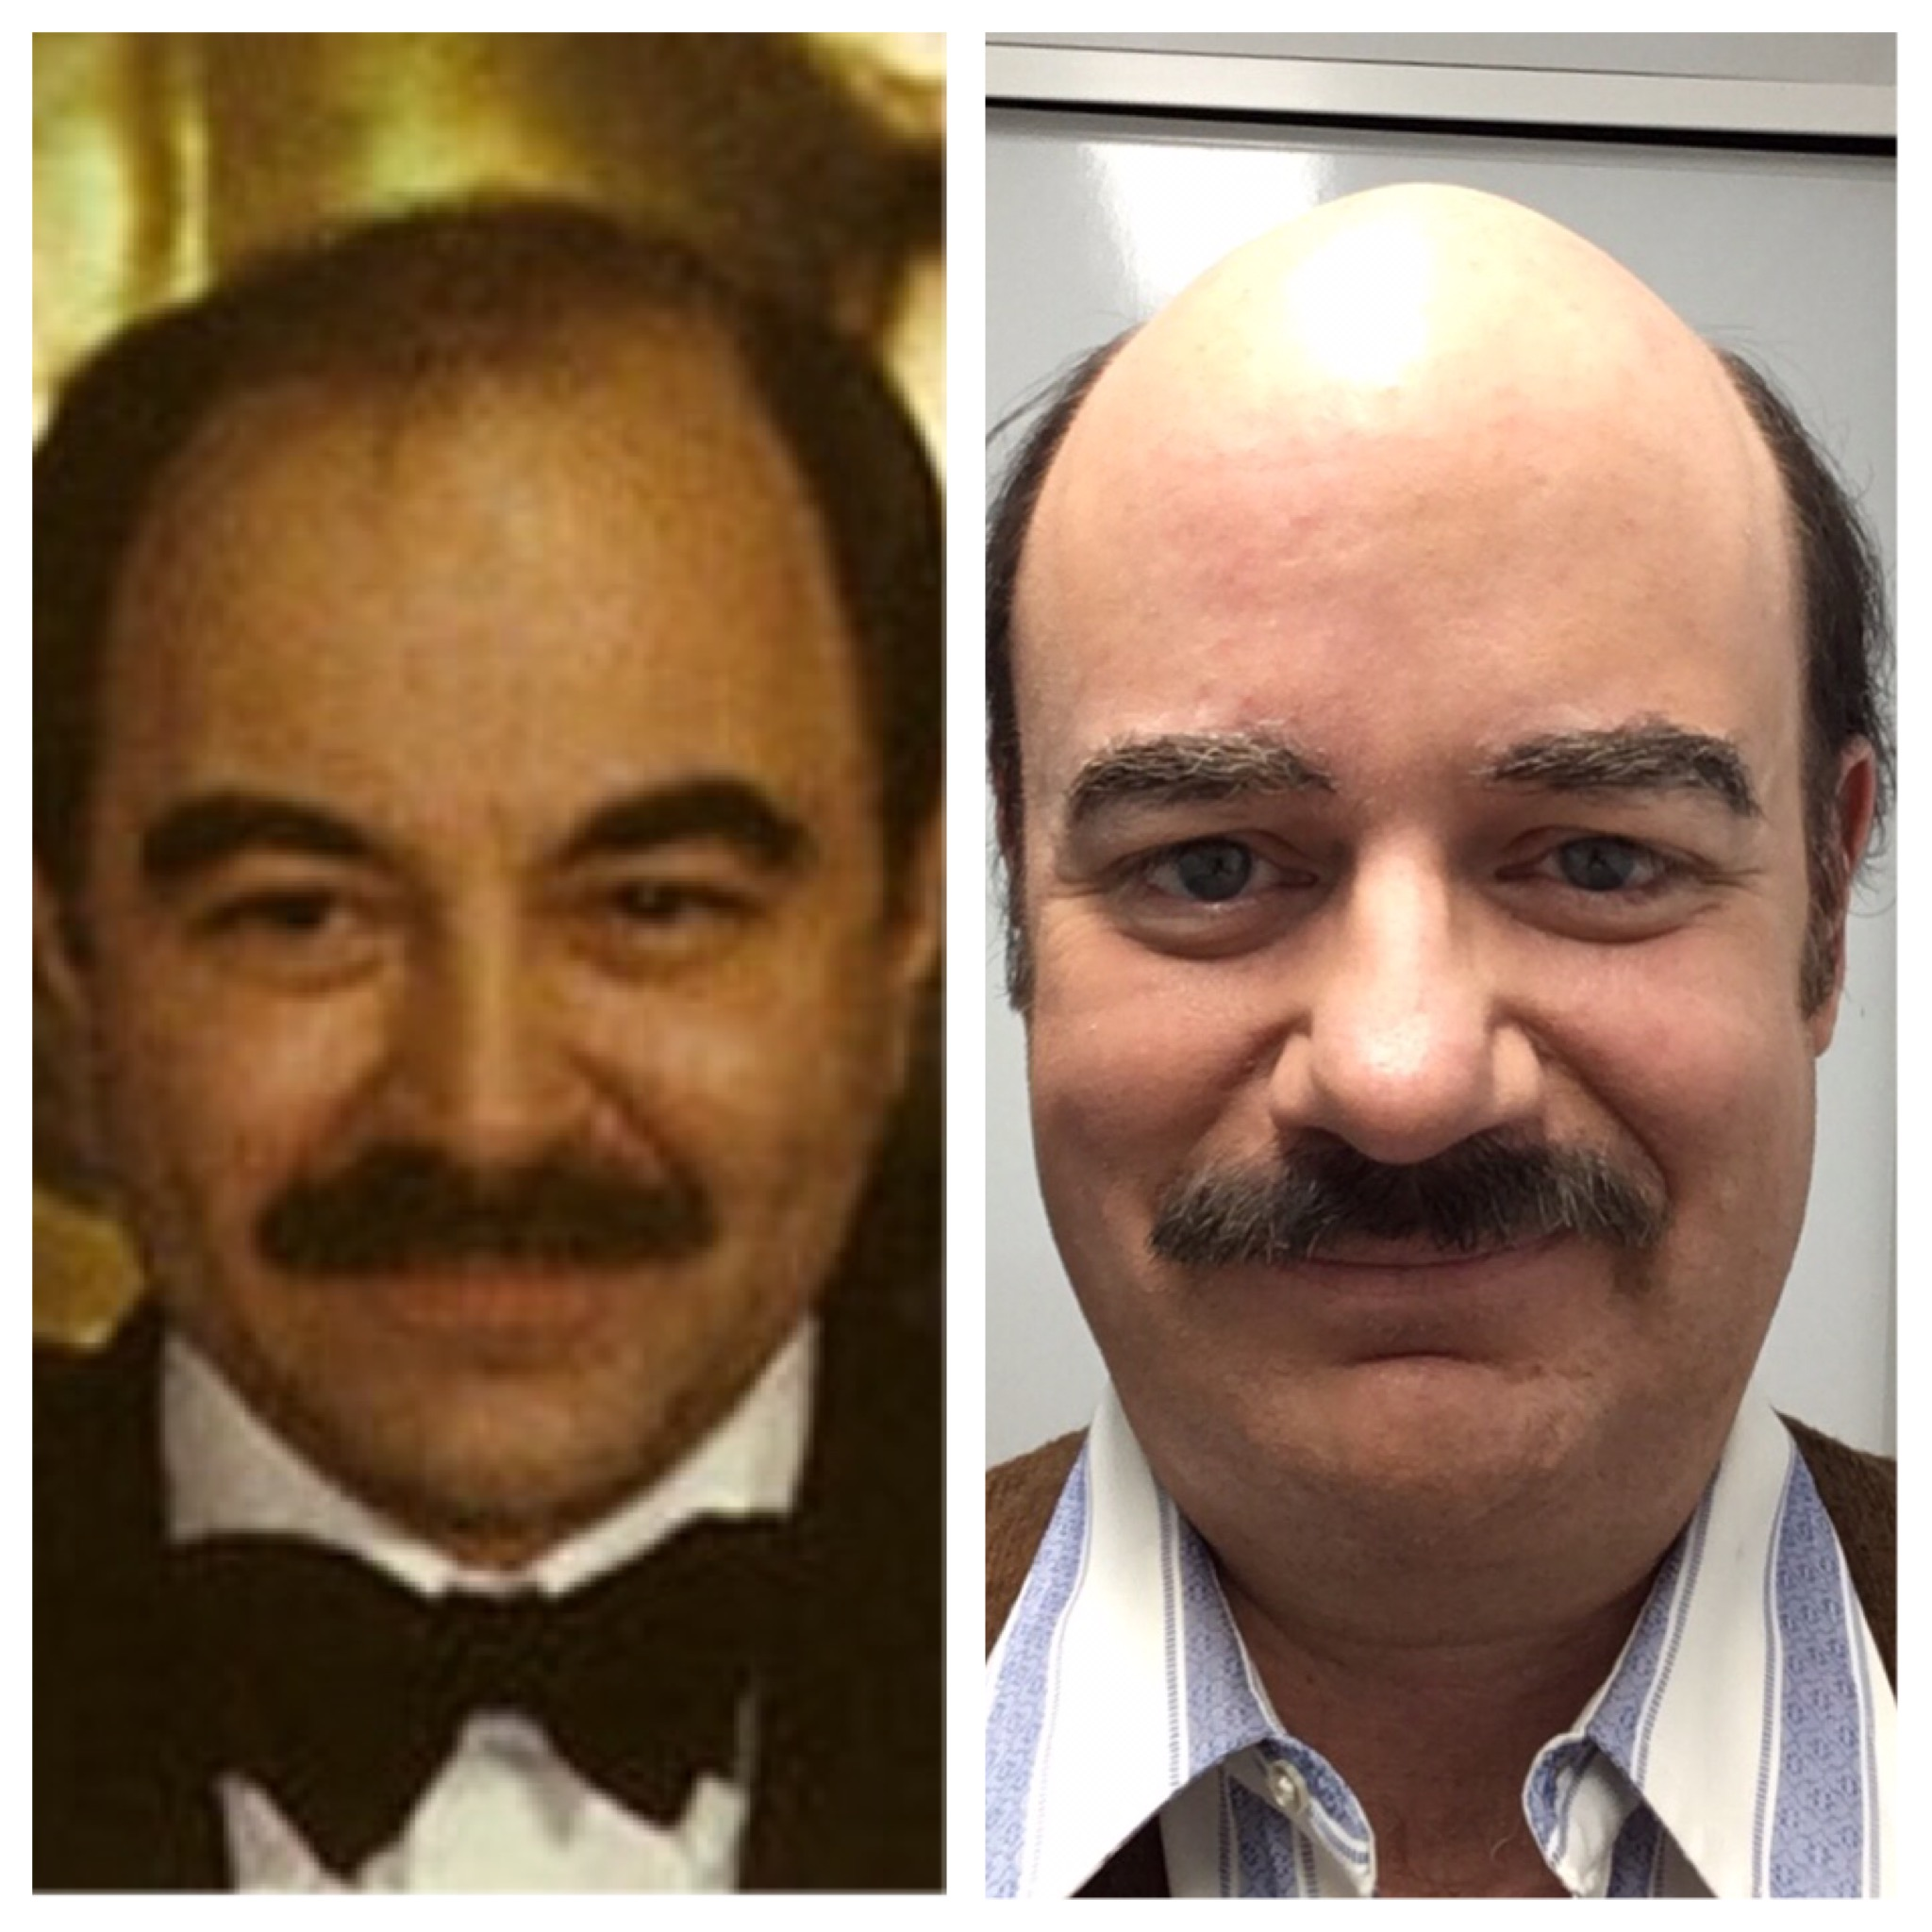 Award winning editor Alan Heim… and his doppelganger.